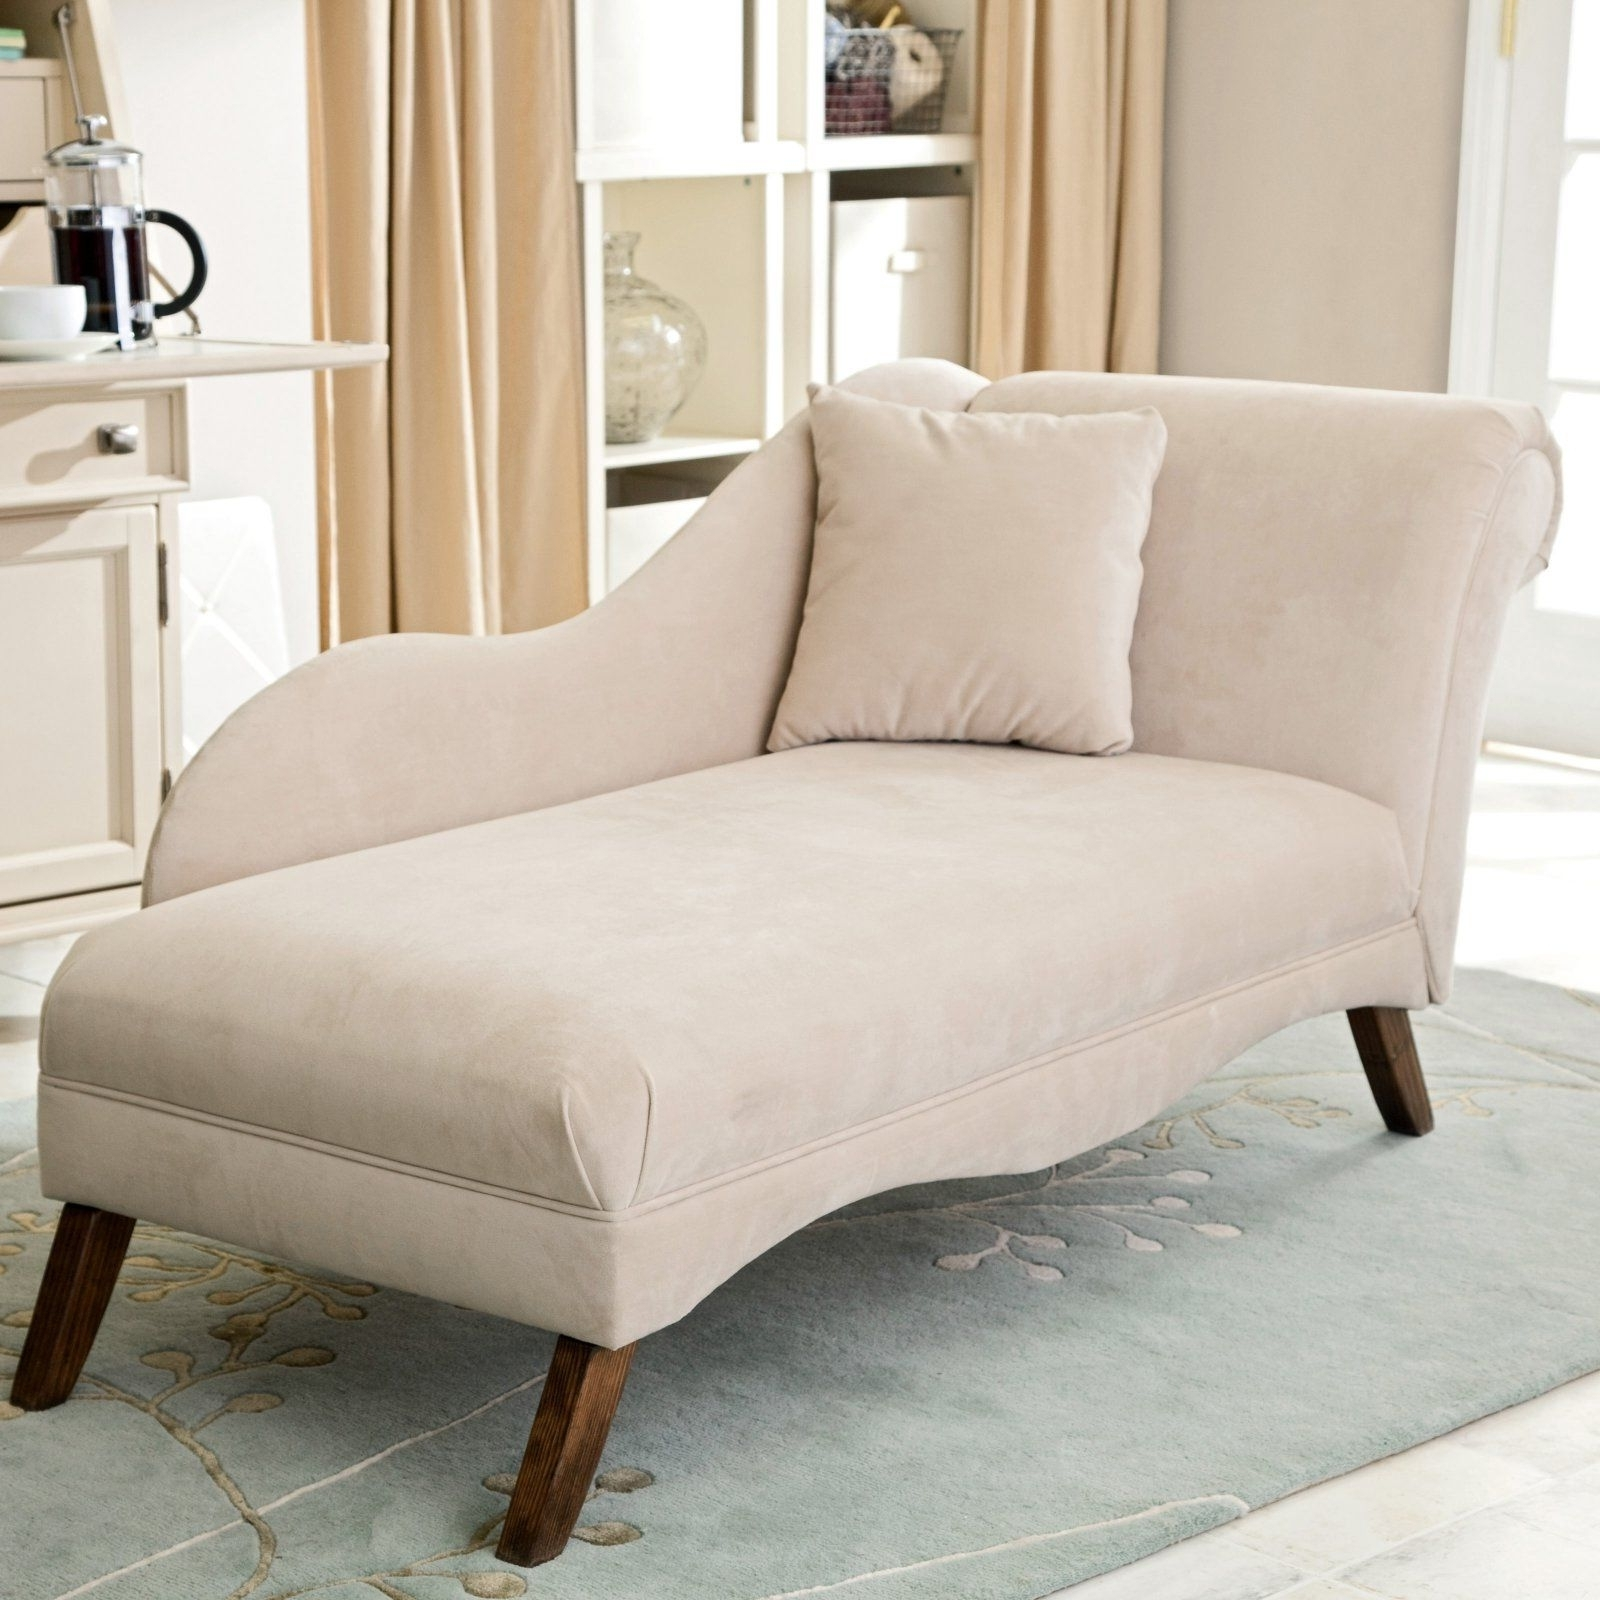 Favorite Contemporary Small Chaise Lounge Tufted With Pillow (View 6 of 15)